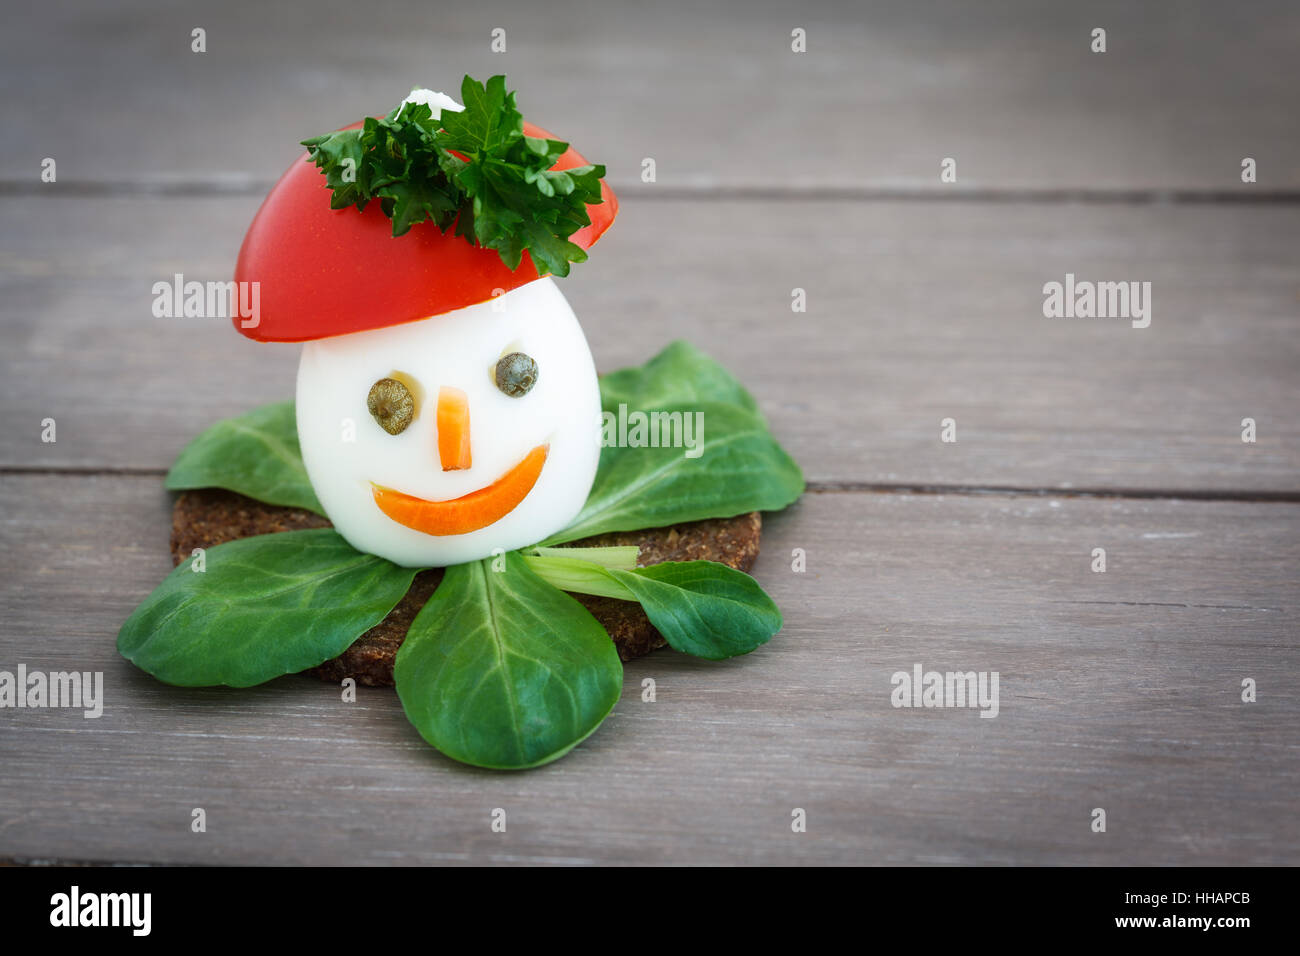 Decorated Hard Boiled Eggs Stock Photo 131158843 Alamy